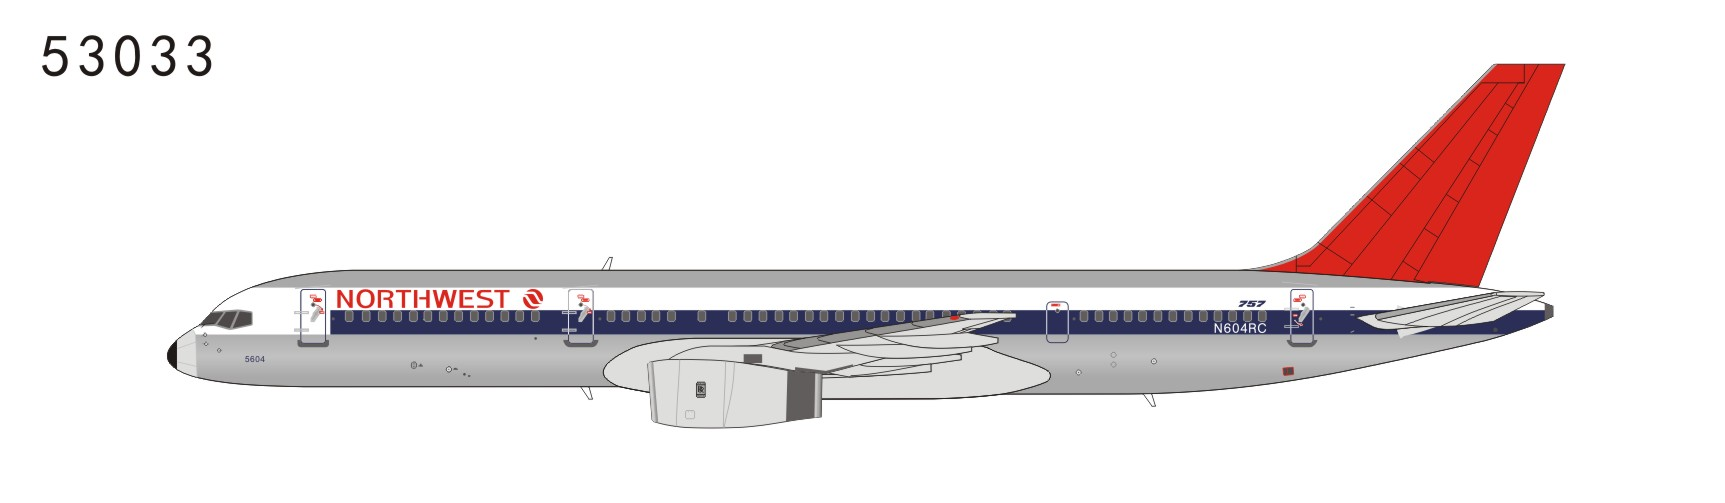 Nothwest Airlines 757-200 N604RC full NW color, red tail (1:400)